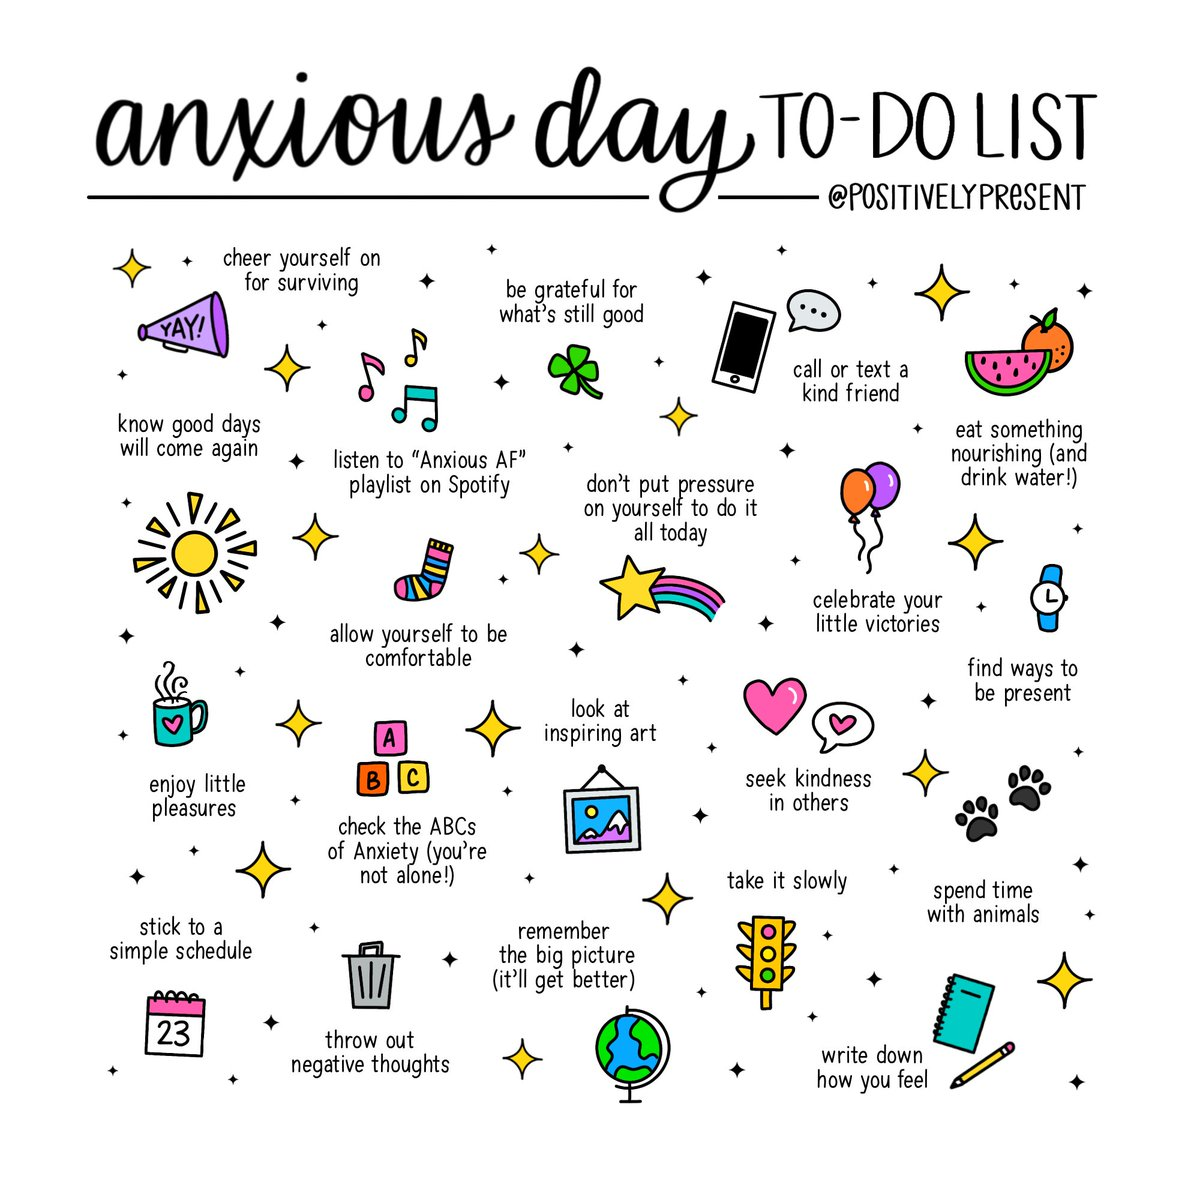 Feeling anxious? Here are some things that help me on anxious days!